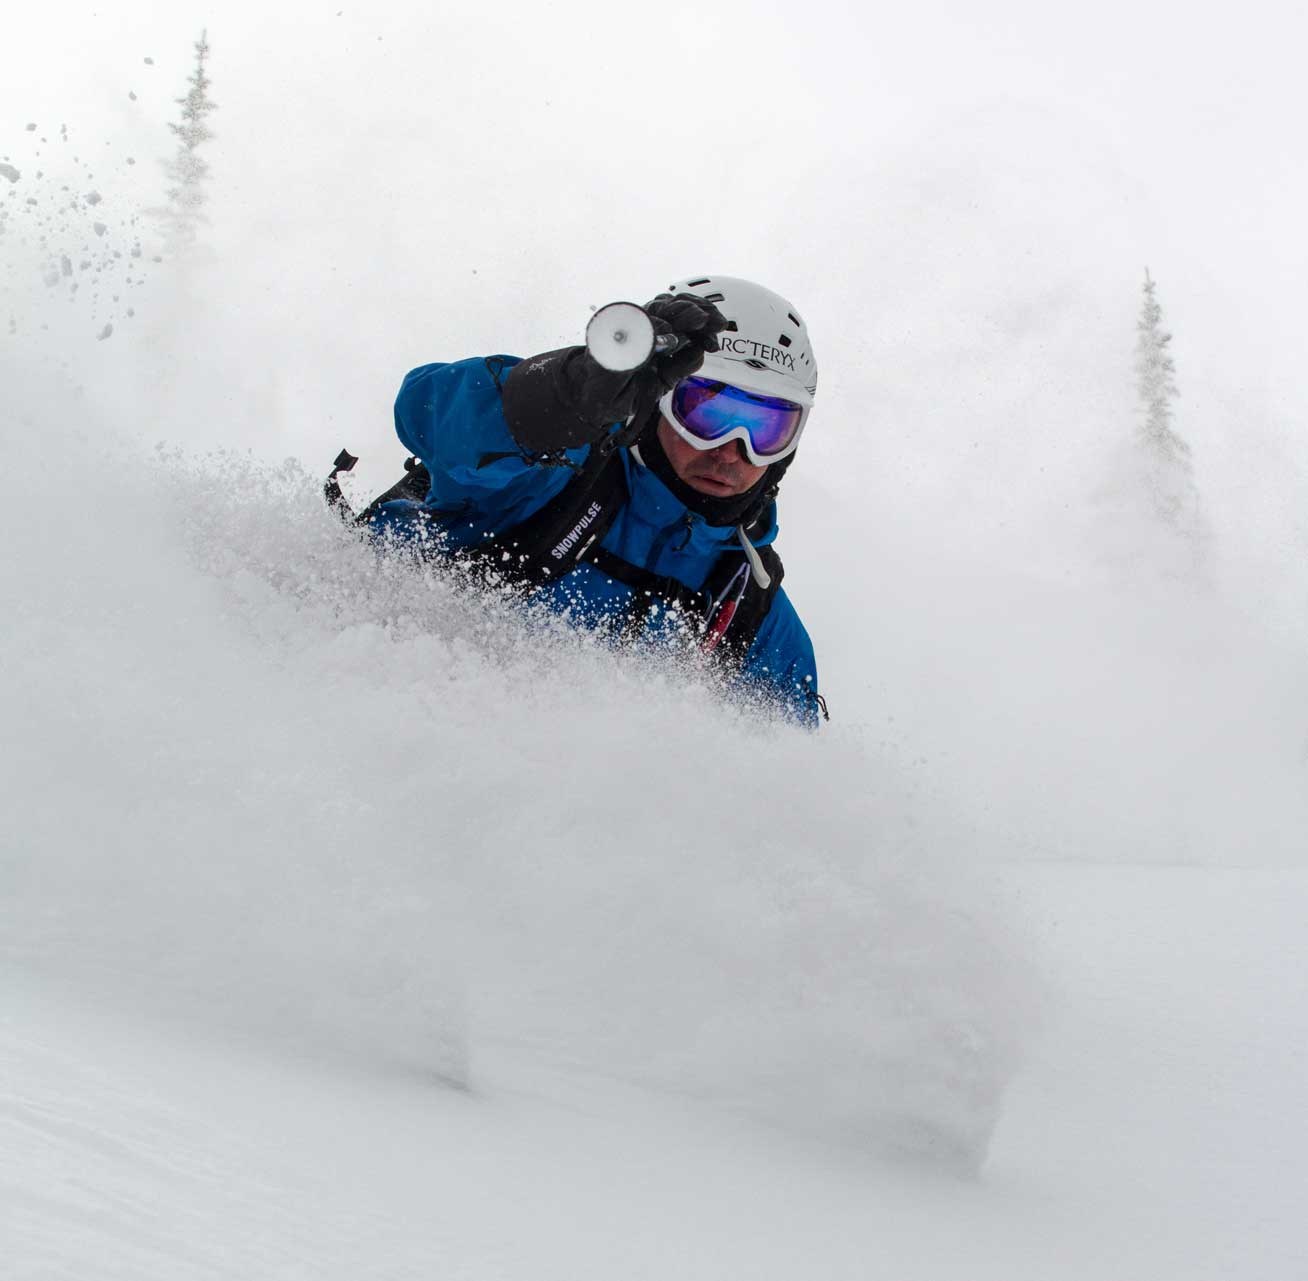 Skier in powdery snow with foggy trees in background